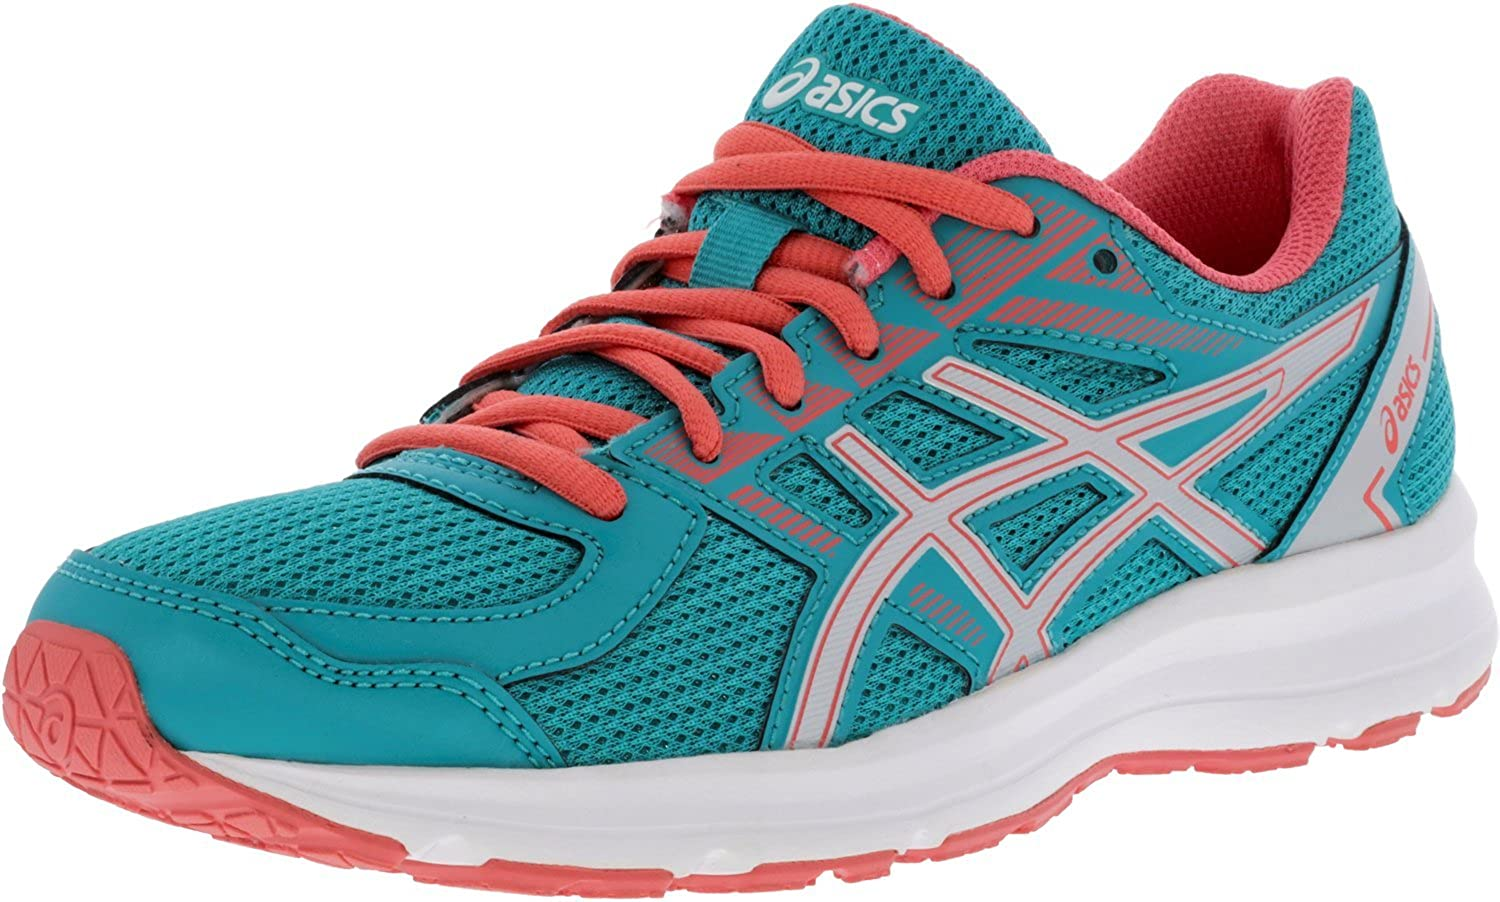 ASICS donna Jolt correrening sautope Fabric Low, Veridian verde argento Peach, Dimensione 8.5